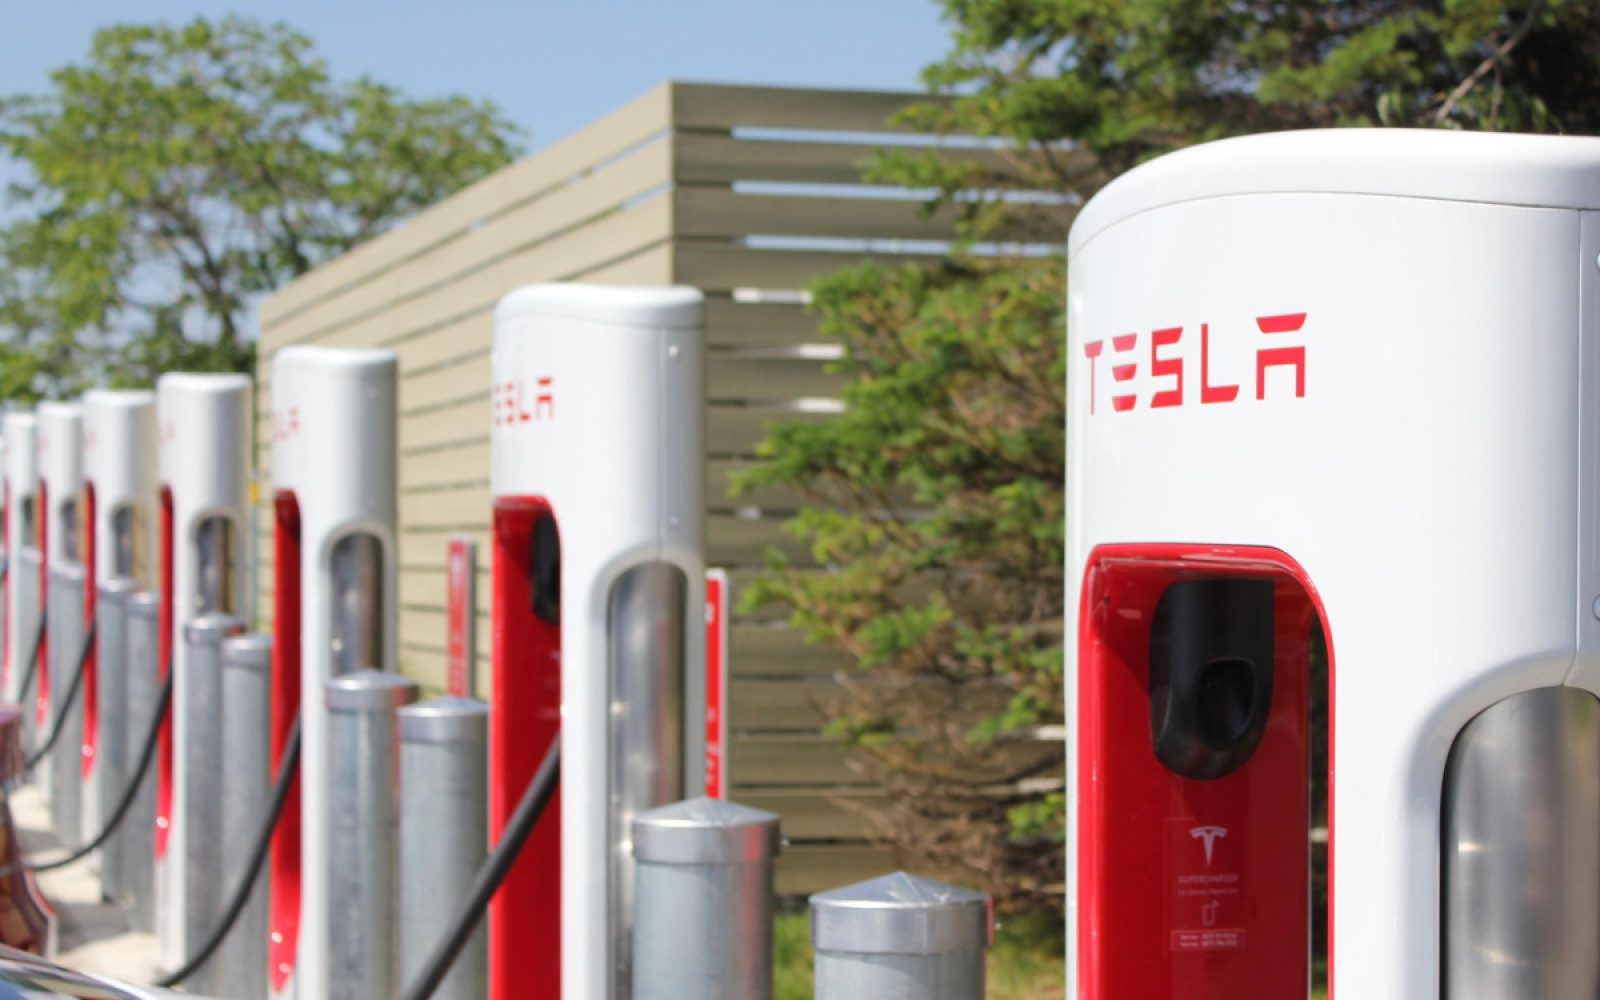 Tesla Quietly Upgraded Its Superchargers For Faster Charging Now Chager Baterai Bm 038 Capable Of 145 Kw